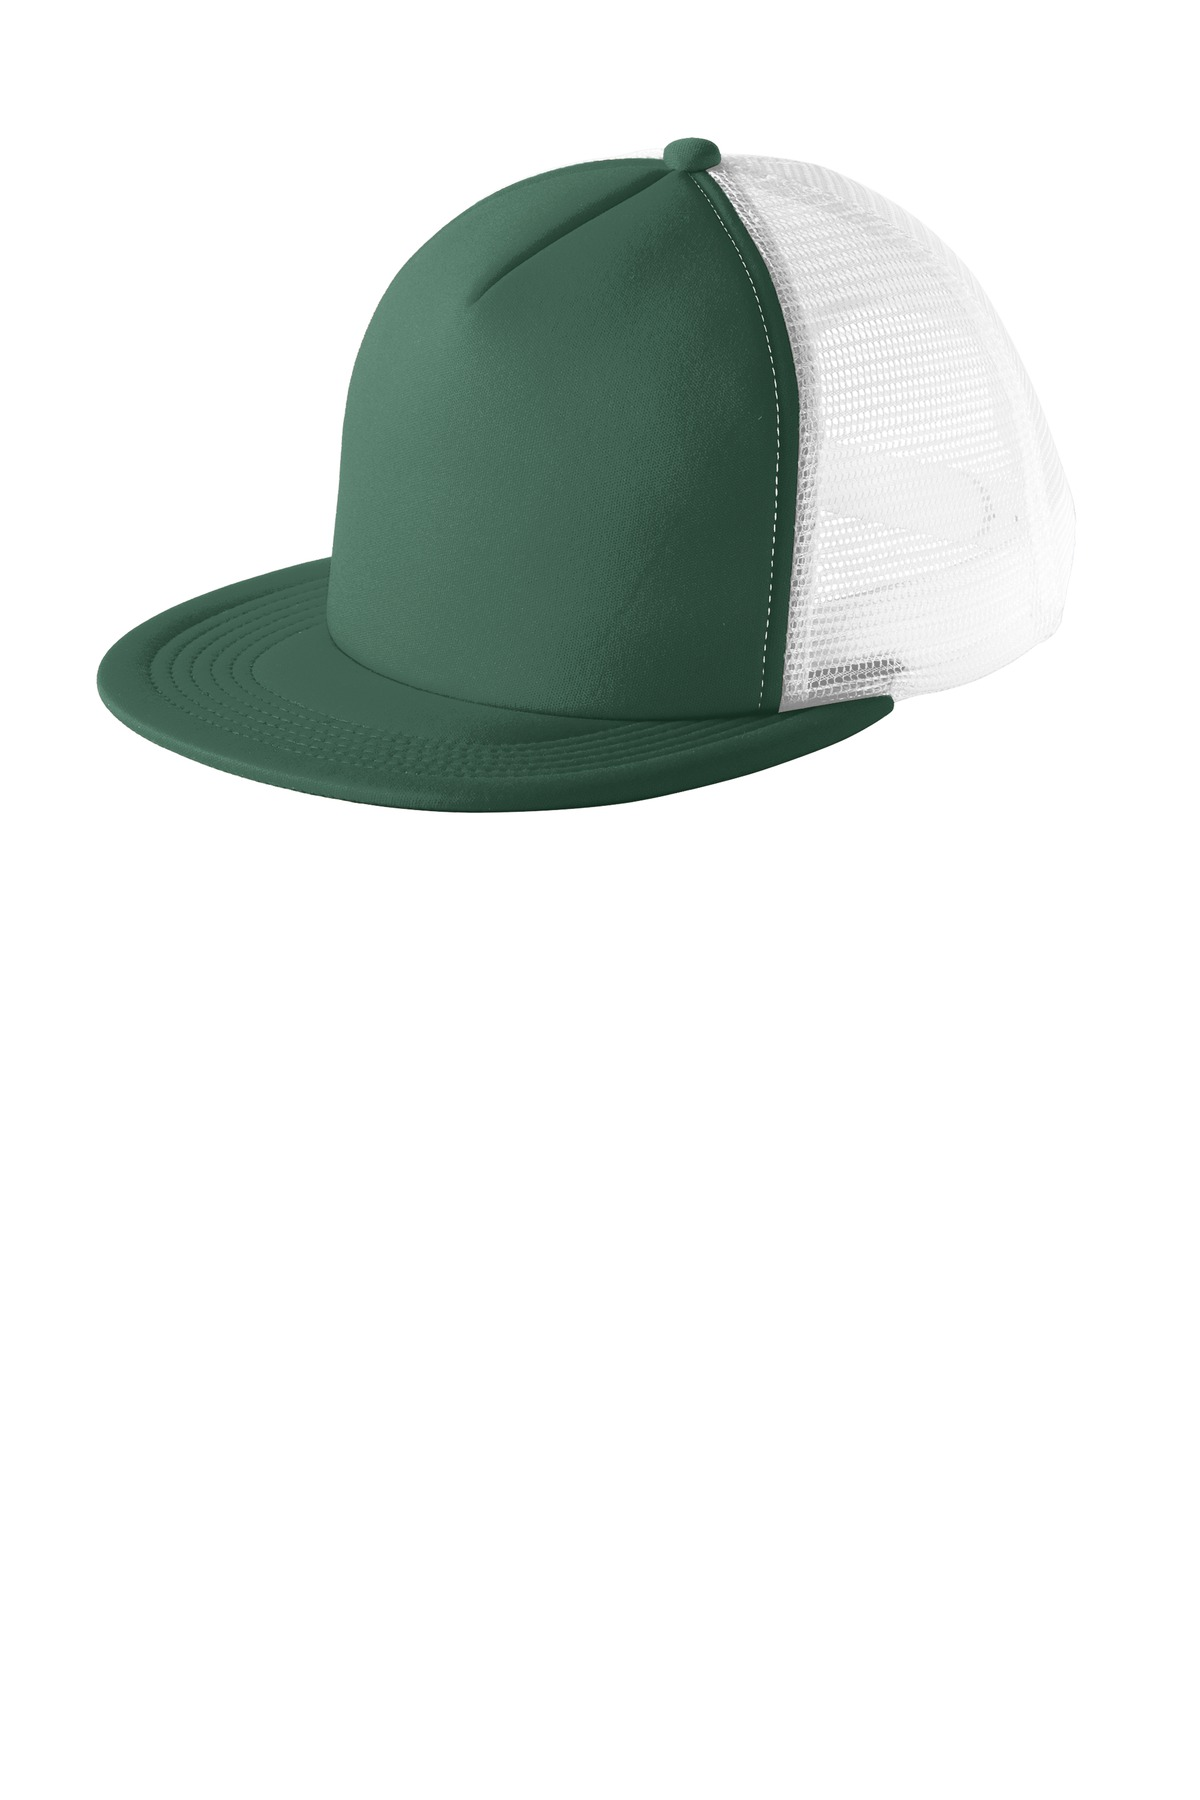 District ®  Flat Bill Snapback Trucker Cap. DT624 - Forest Green